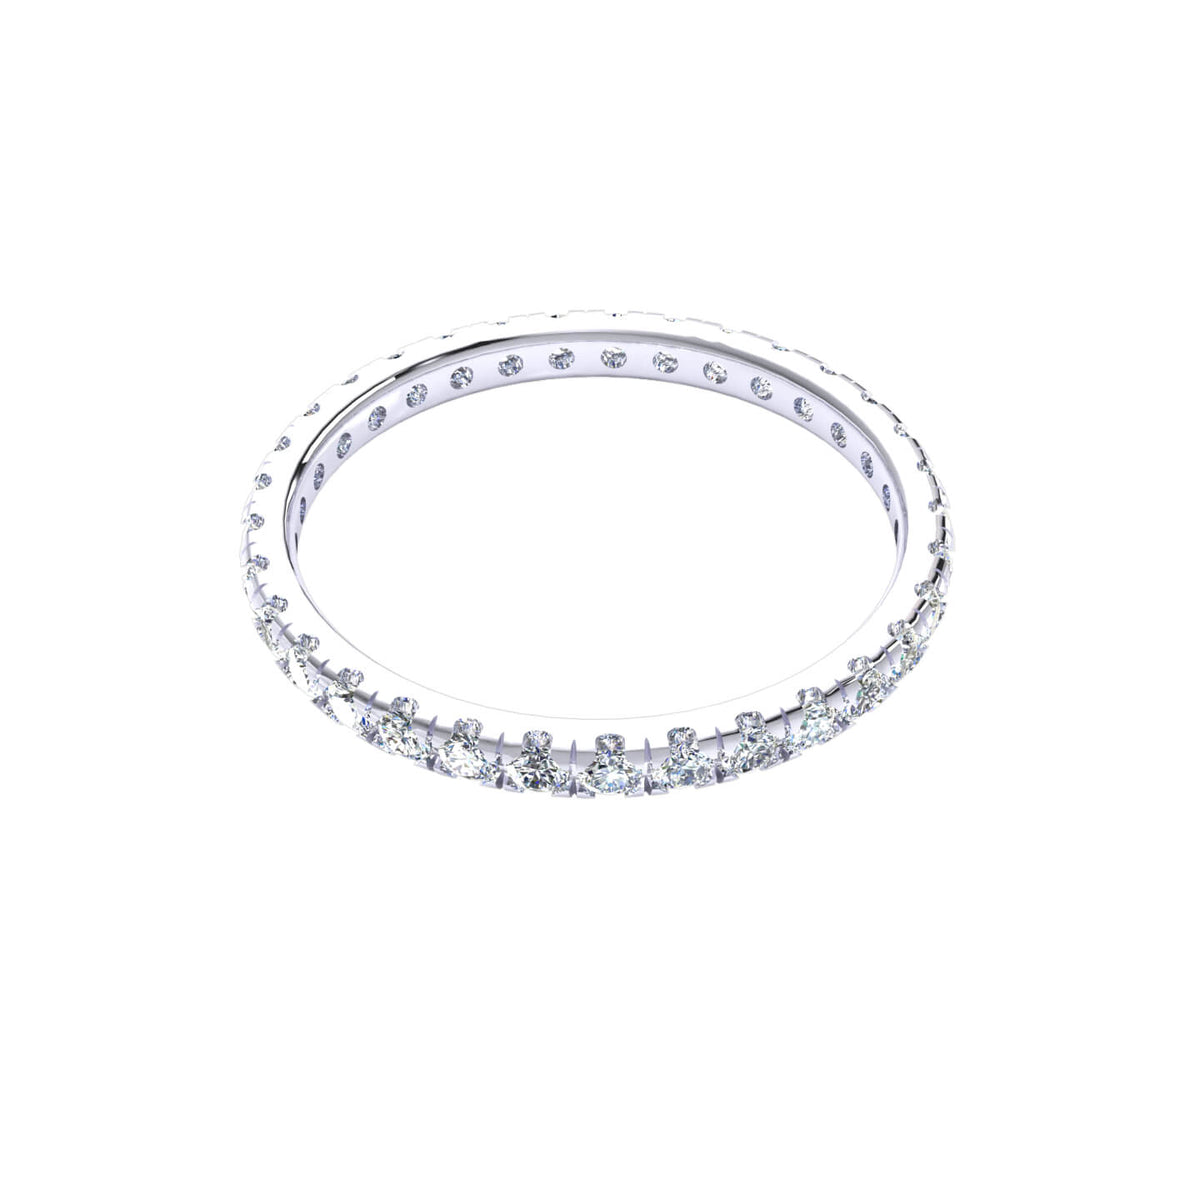 0.60 Ct Round GH I1-I2 Diamond Stackable Eternity Wedding Band For Women 925 Silver